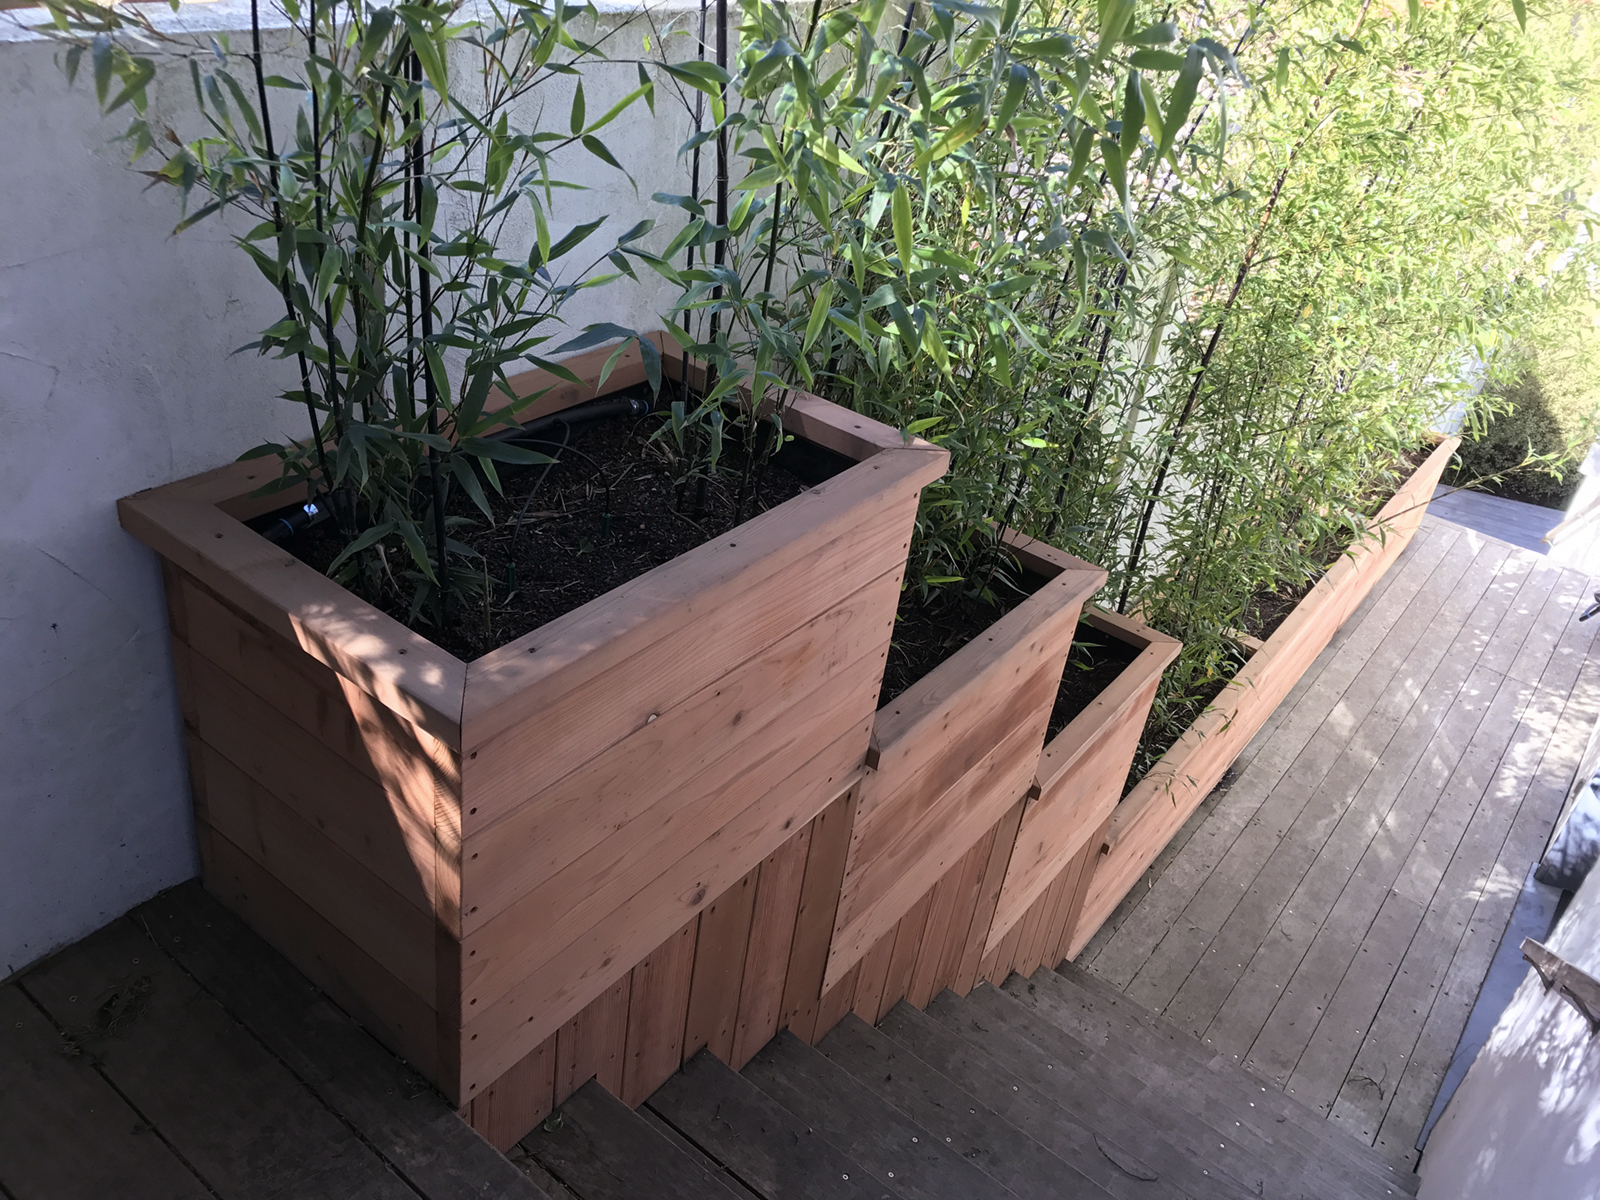 Containers & Planter Boxes for Bamboo - Bamboo Sourcery